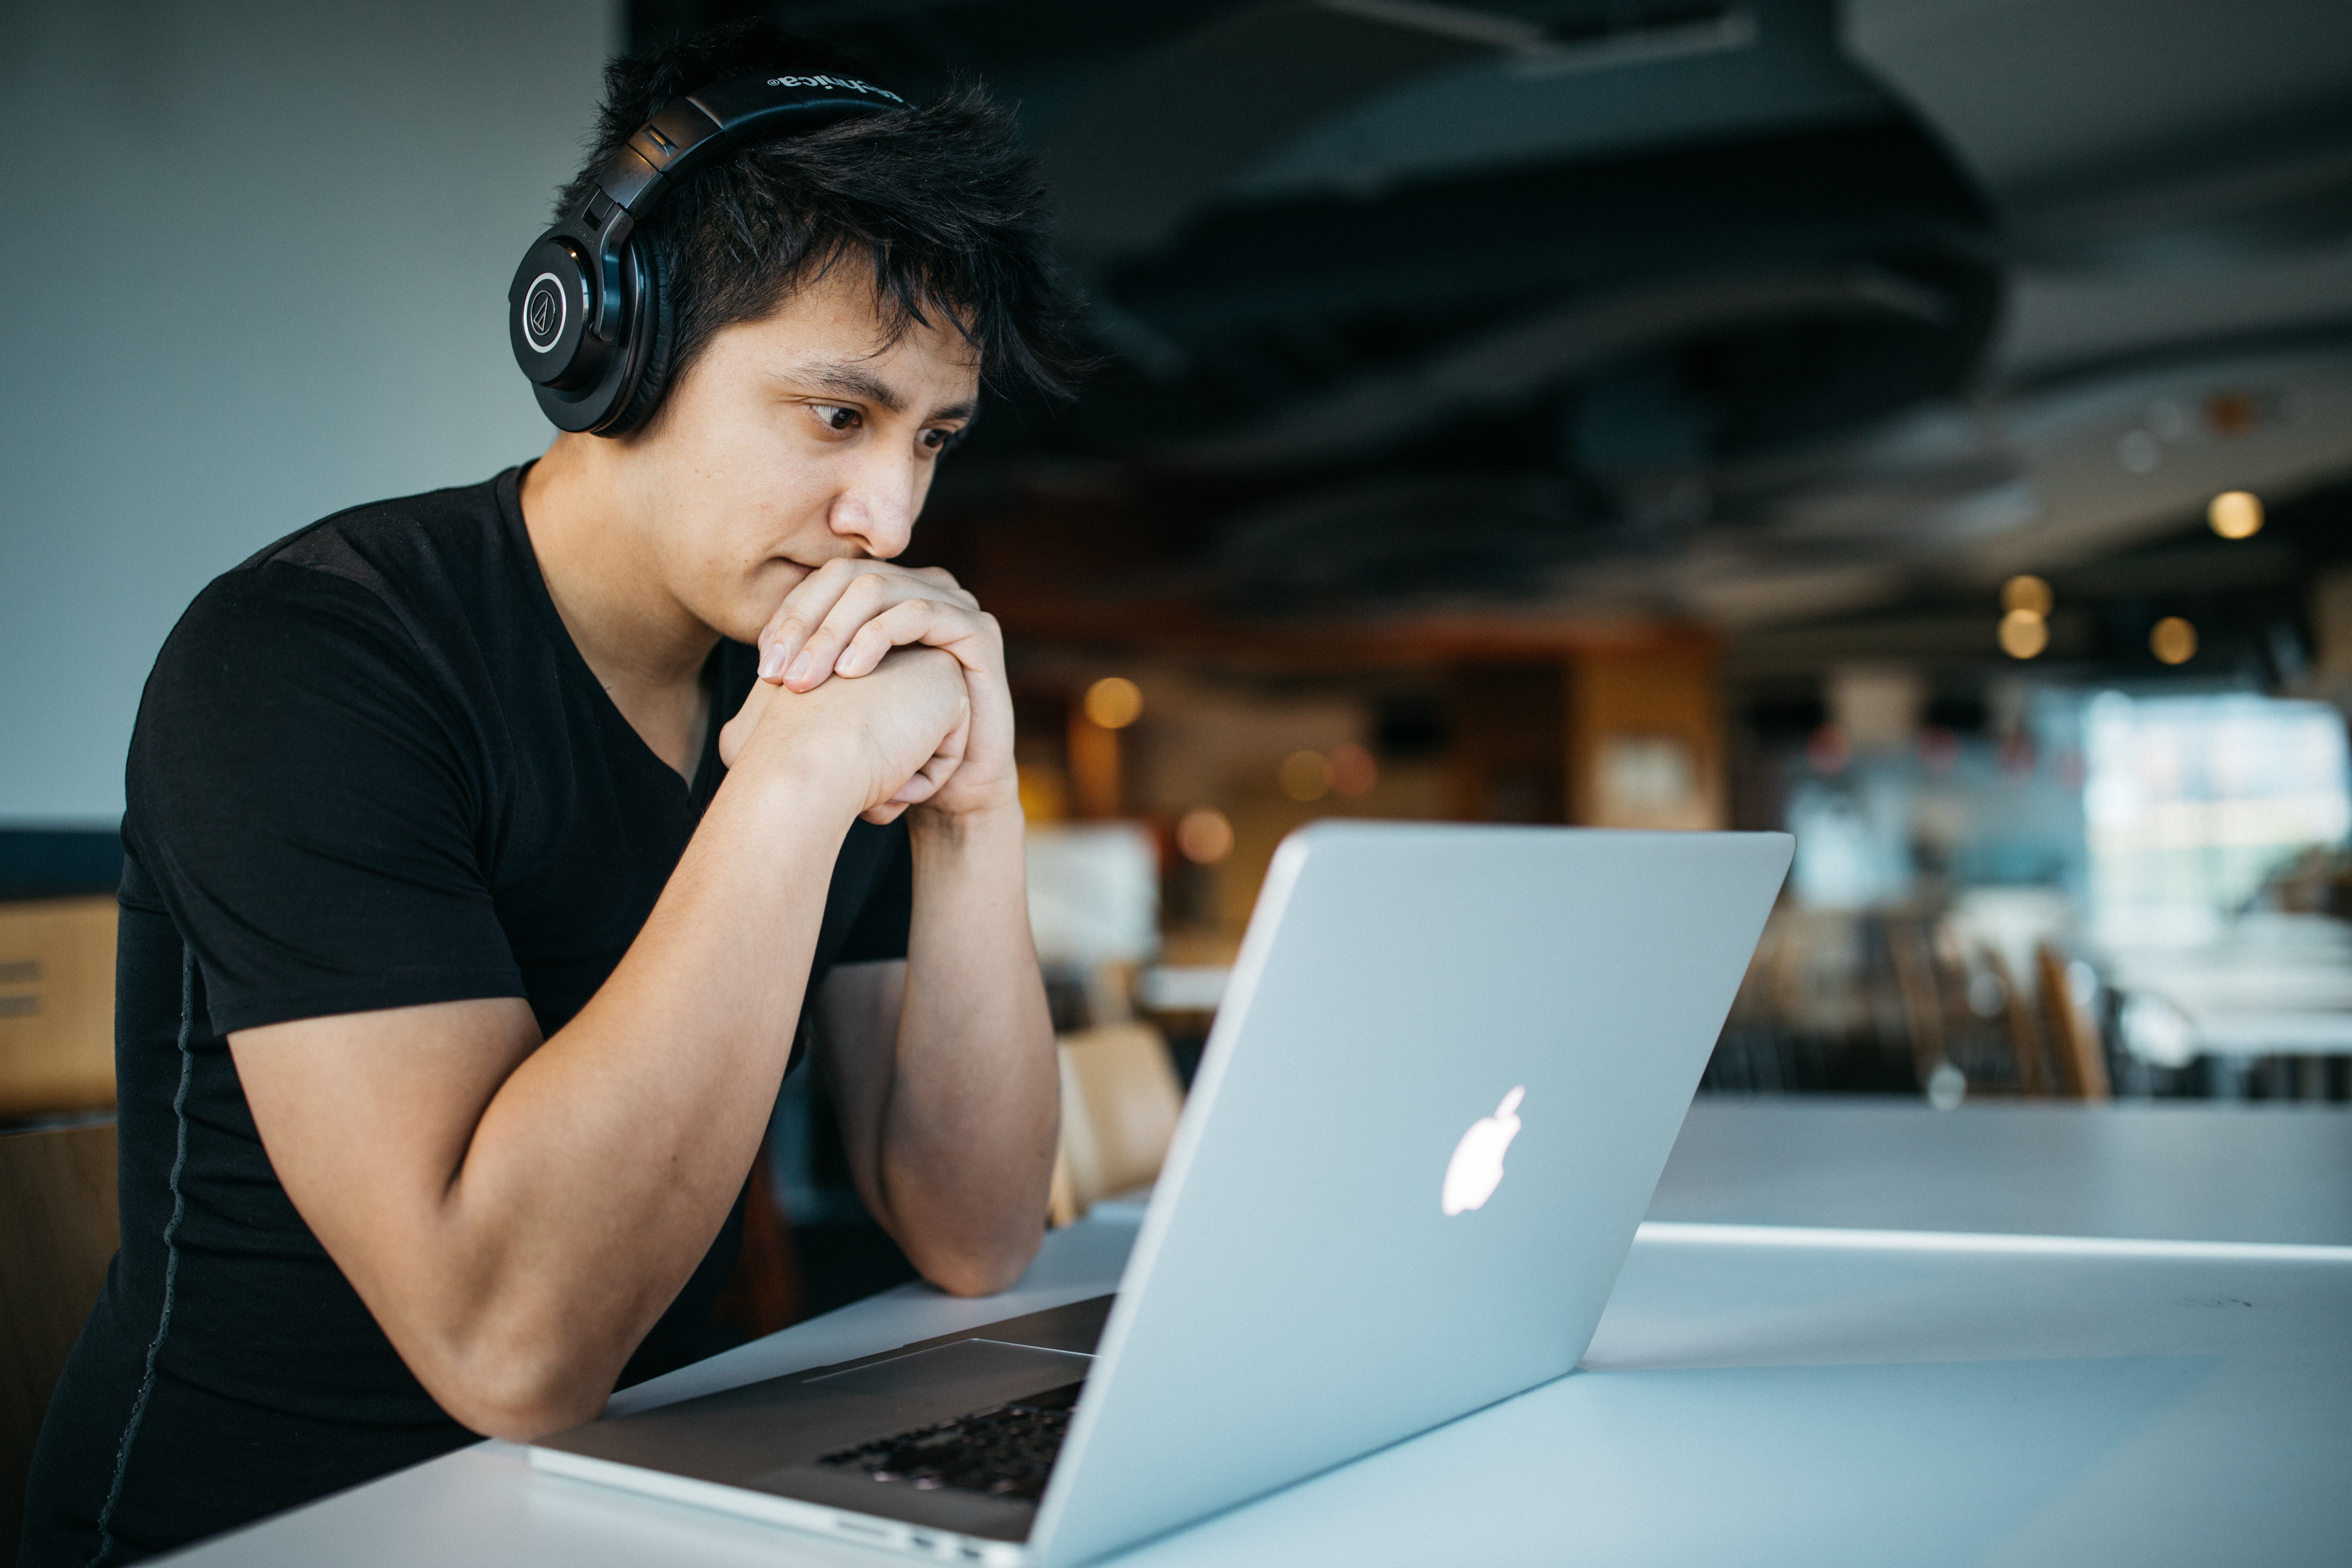 Man taking e-learning course